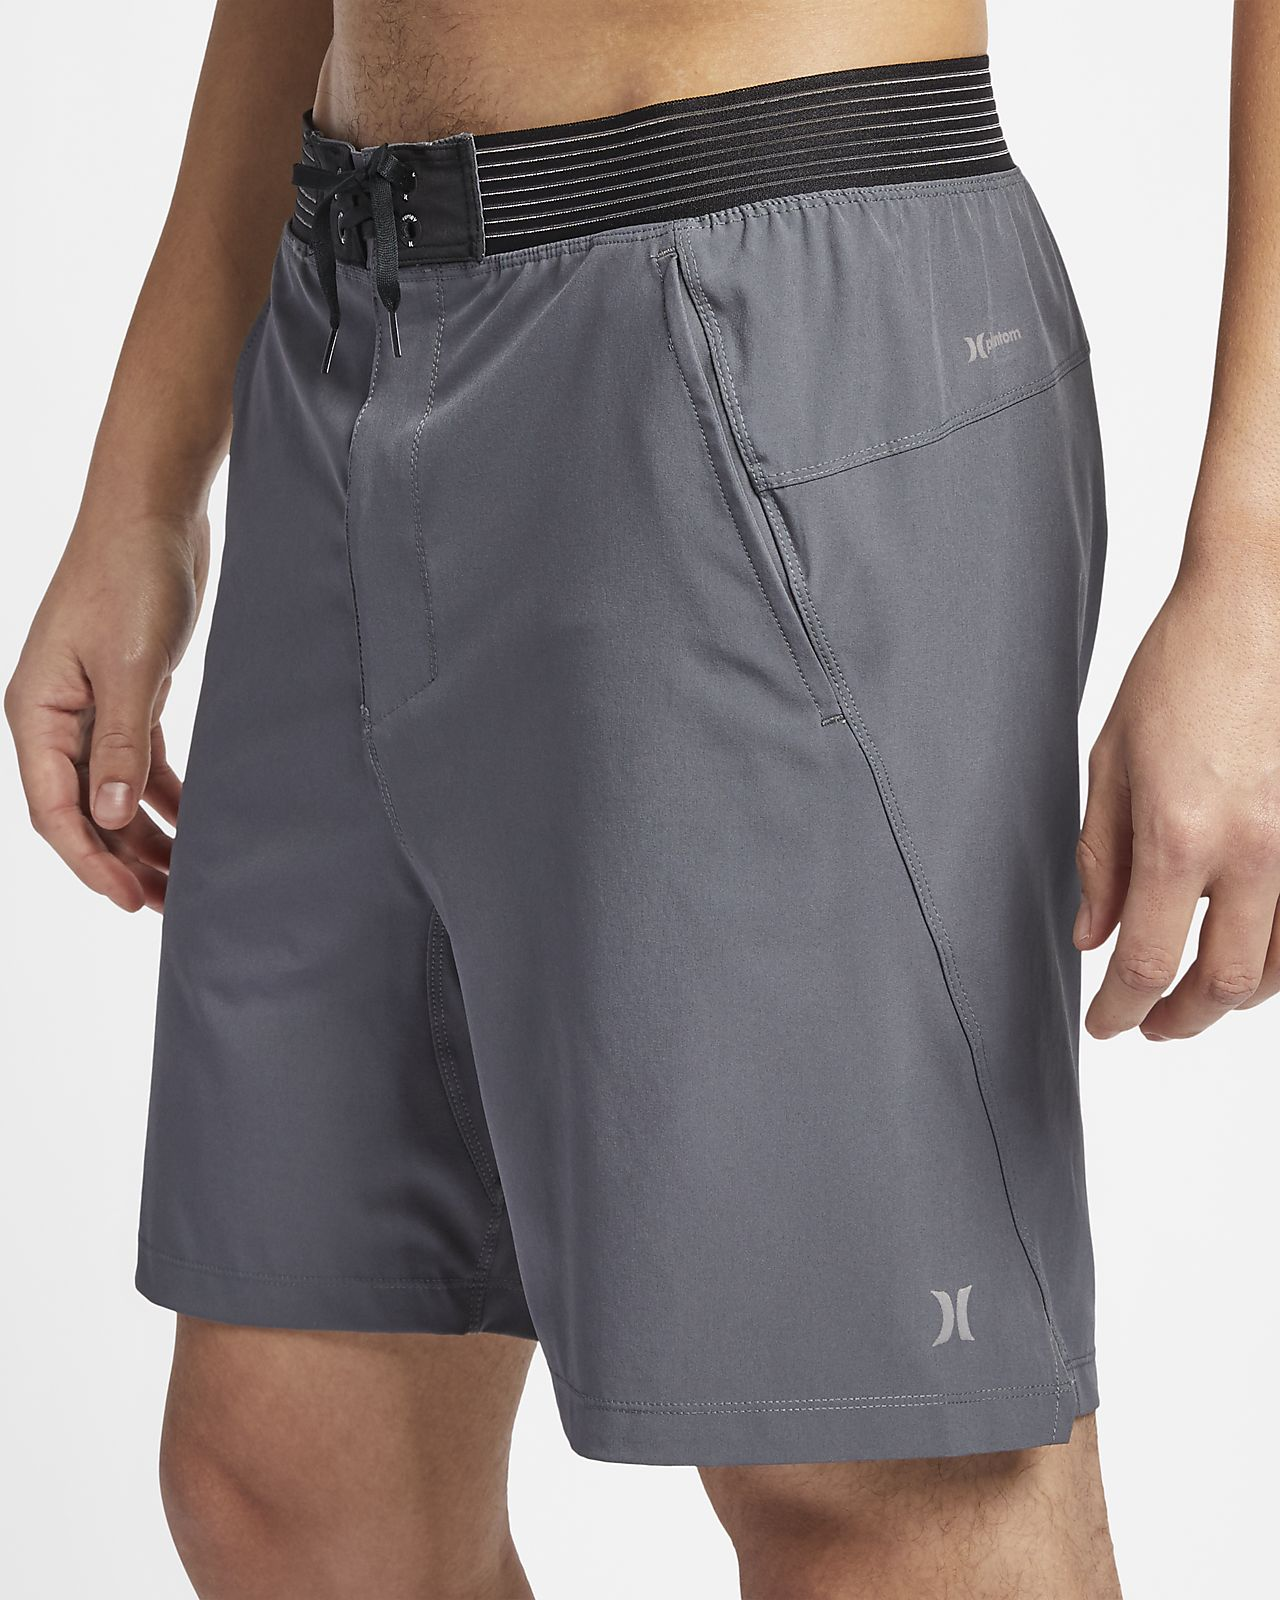 Hurley Phantom Alpha Trainer Men's 46cm Shorts